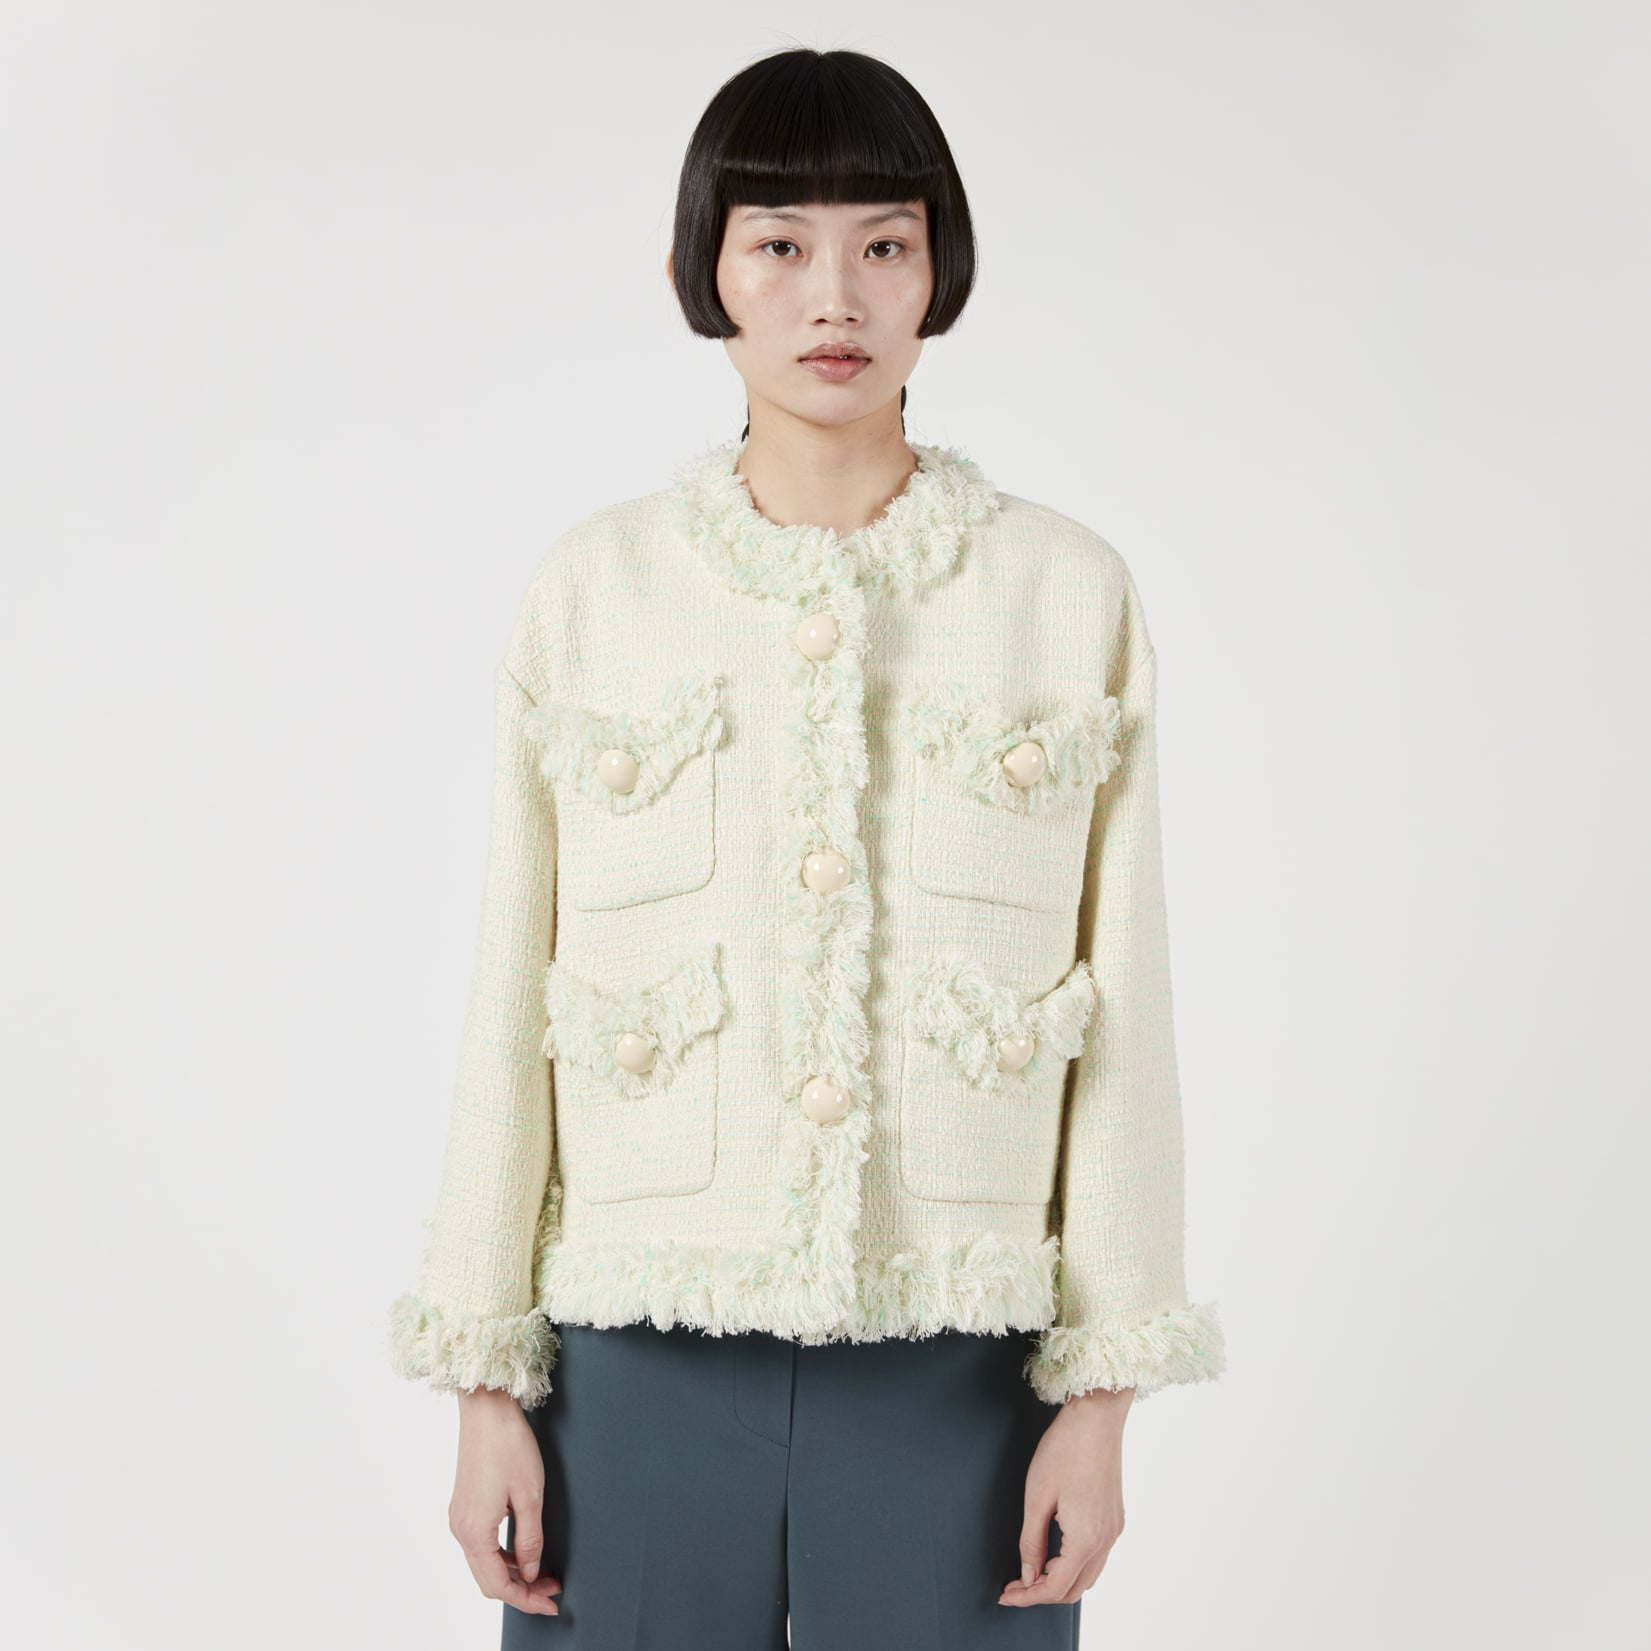 Pushbutton Bubble Button Tweed Jacket